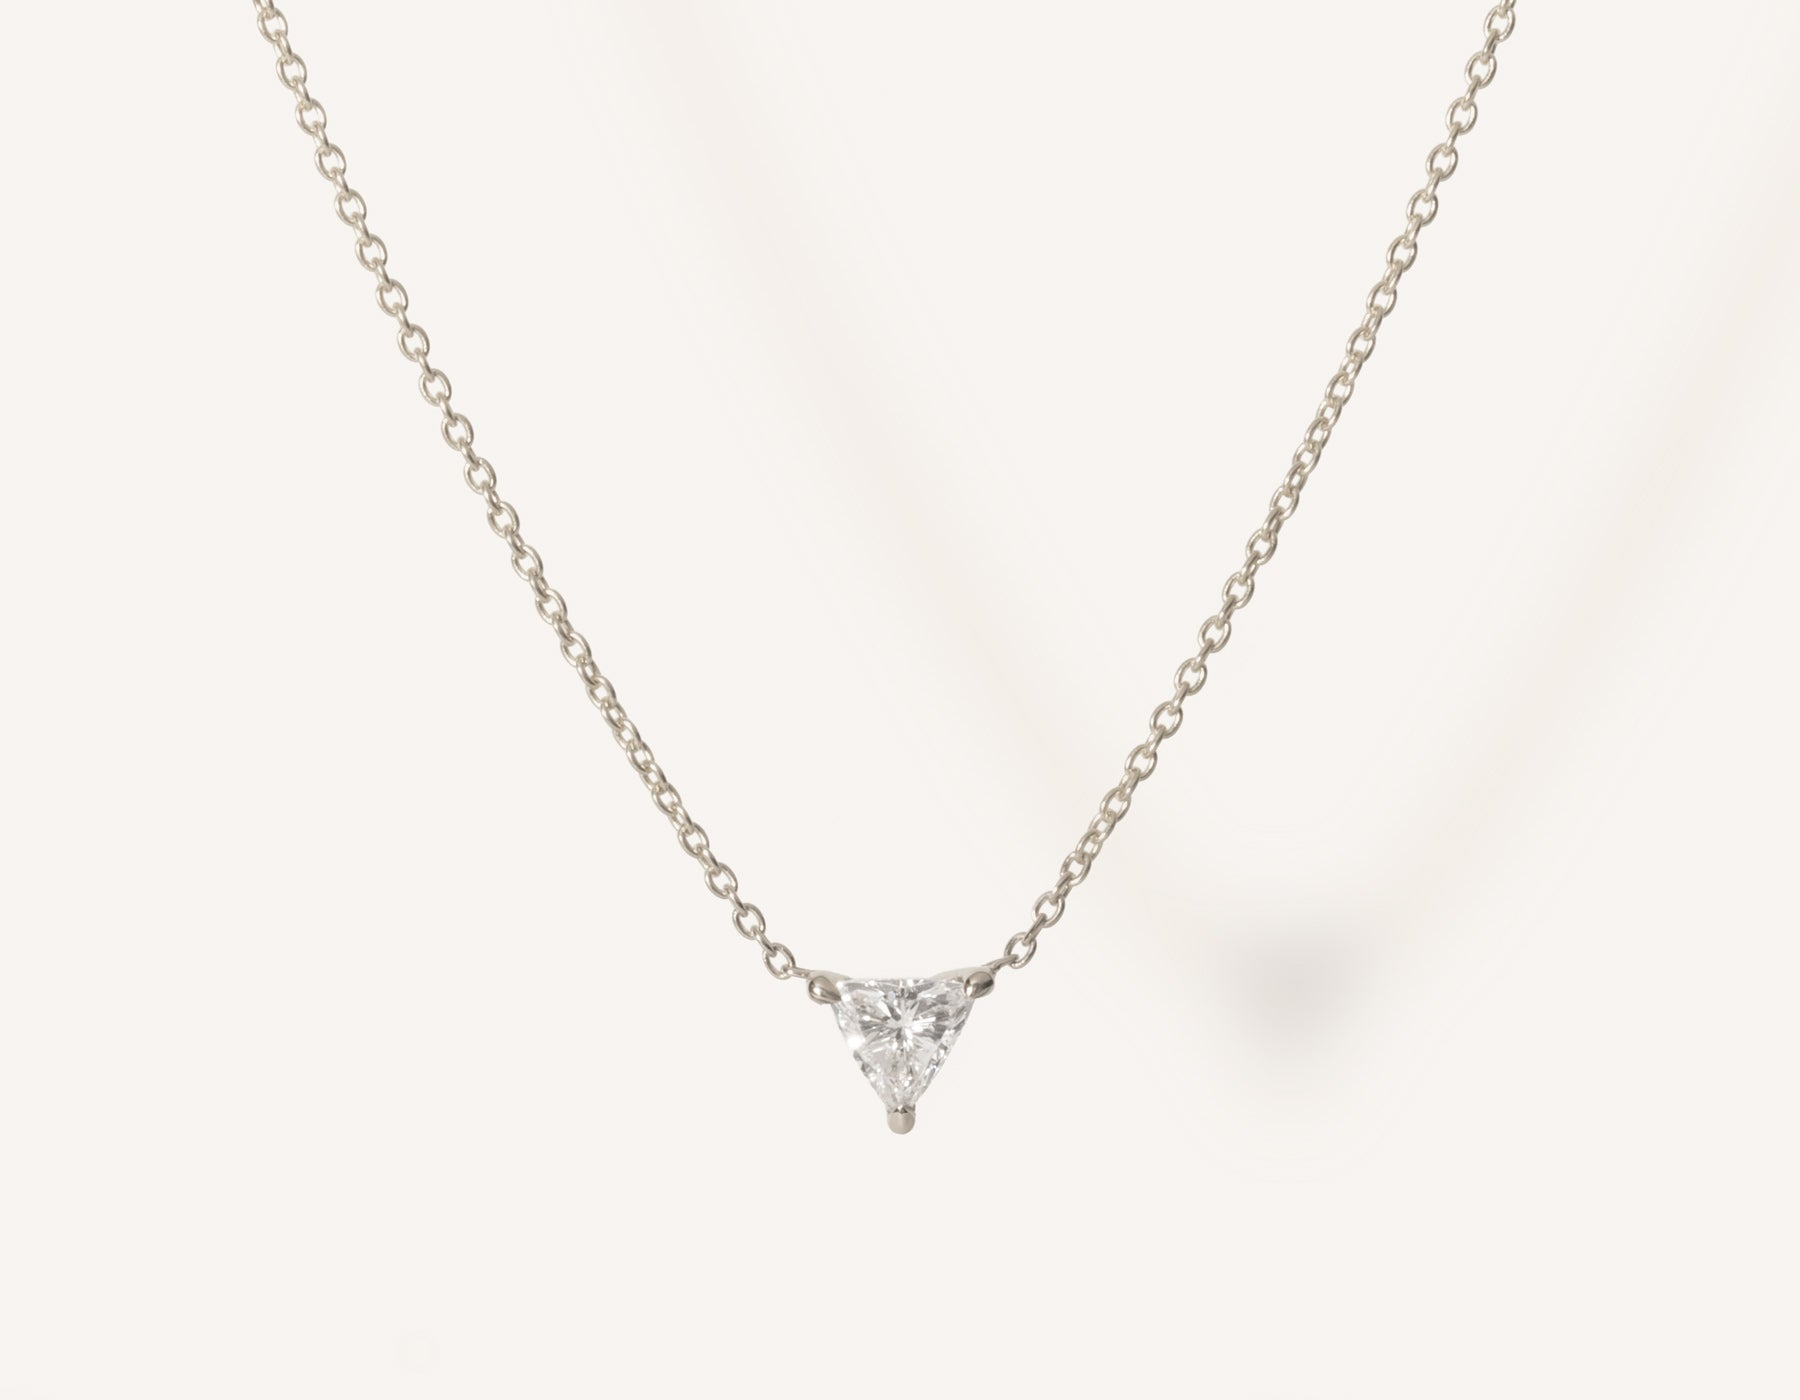 unique geometric 14k solid gold .17 carat Trillion Diamond Necklace on dainty chain by Vrai and Oro minimalist jewelry, 14K White Gold